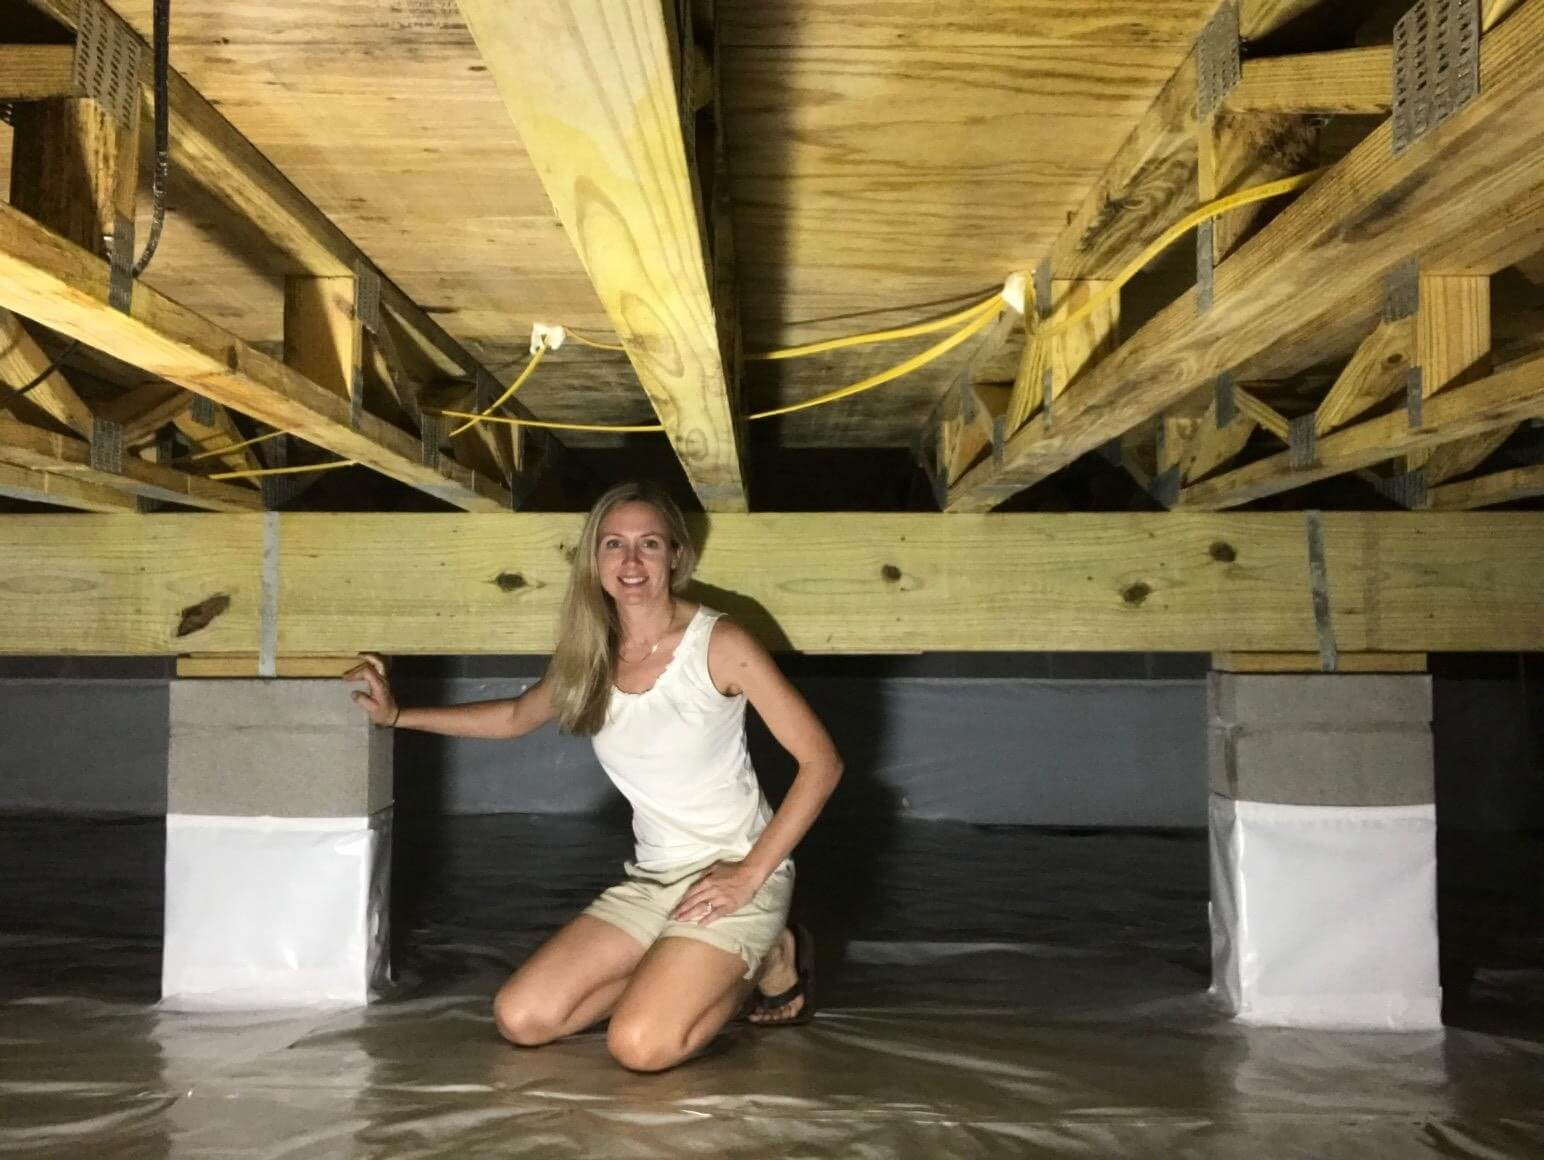 You Get Better at Crawlspace 10